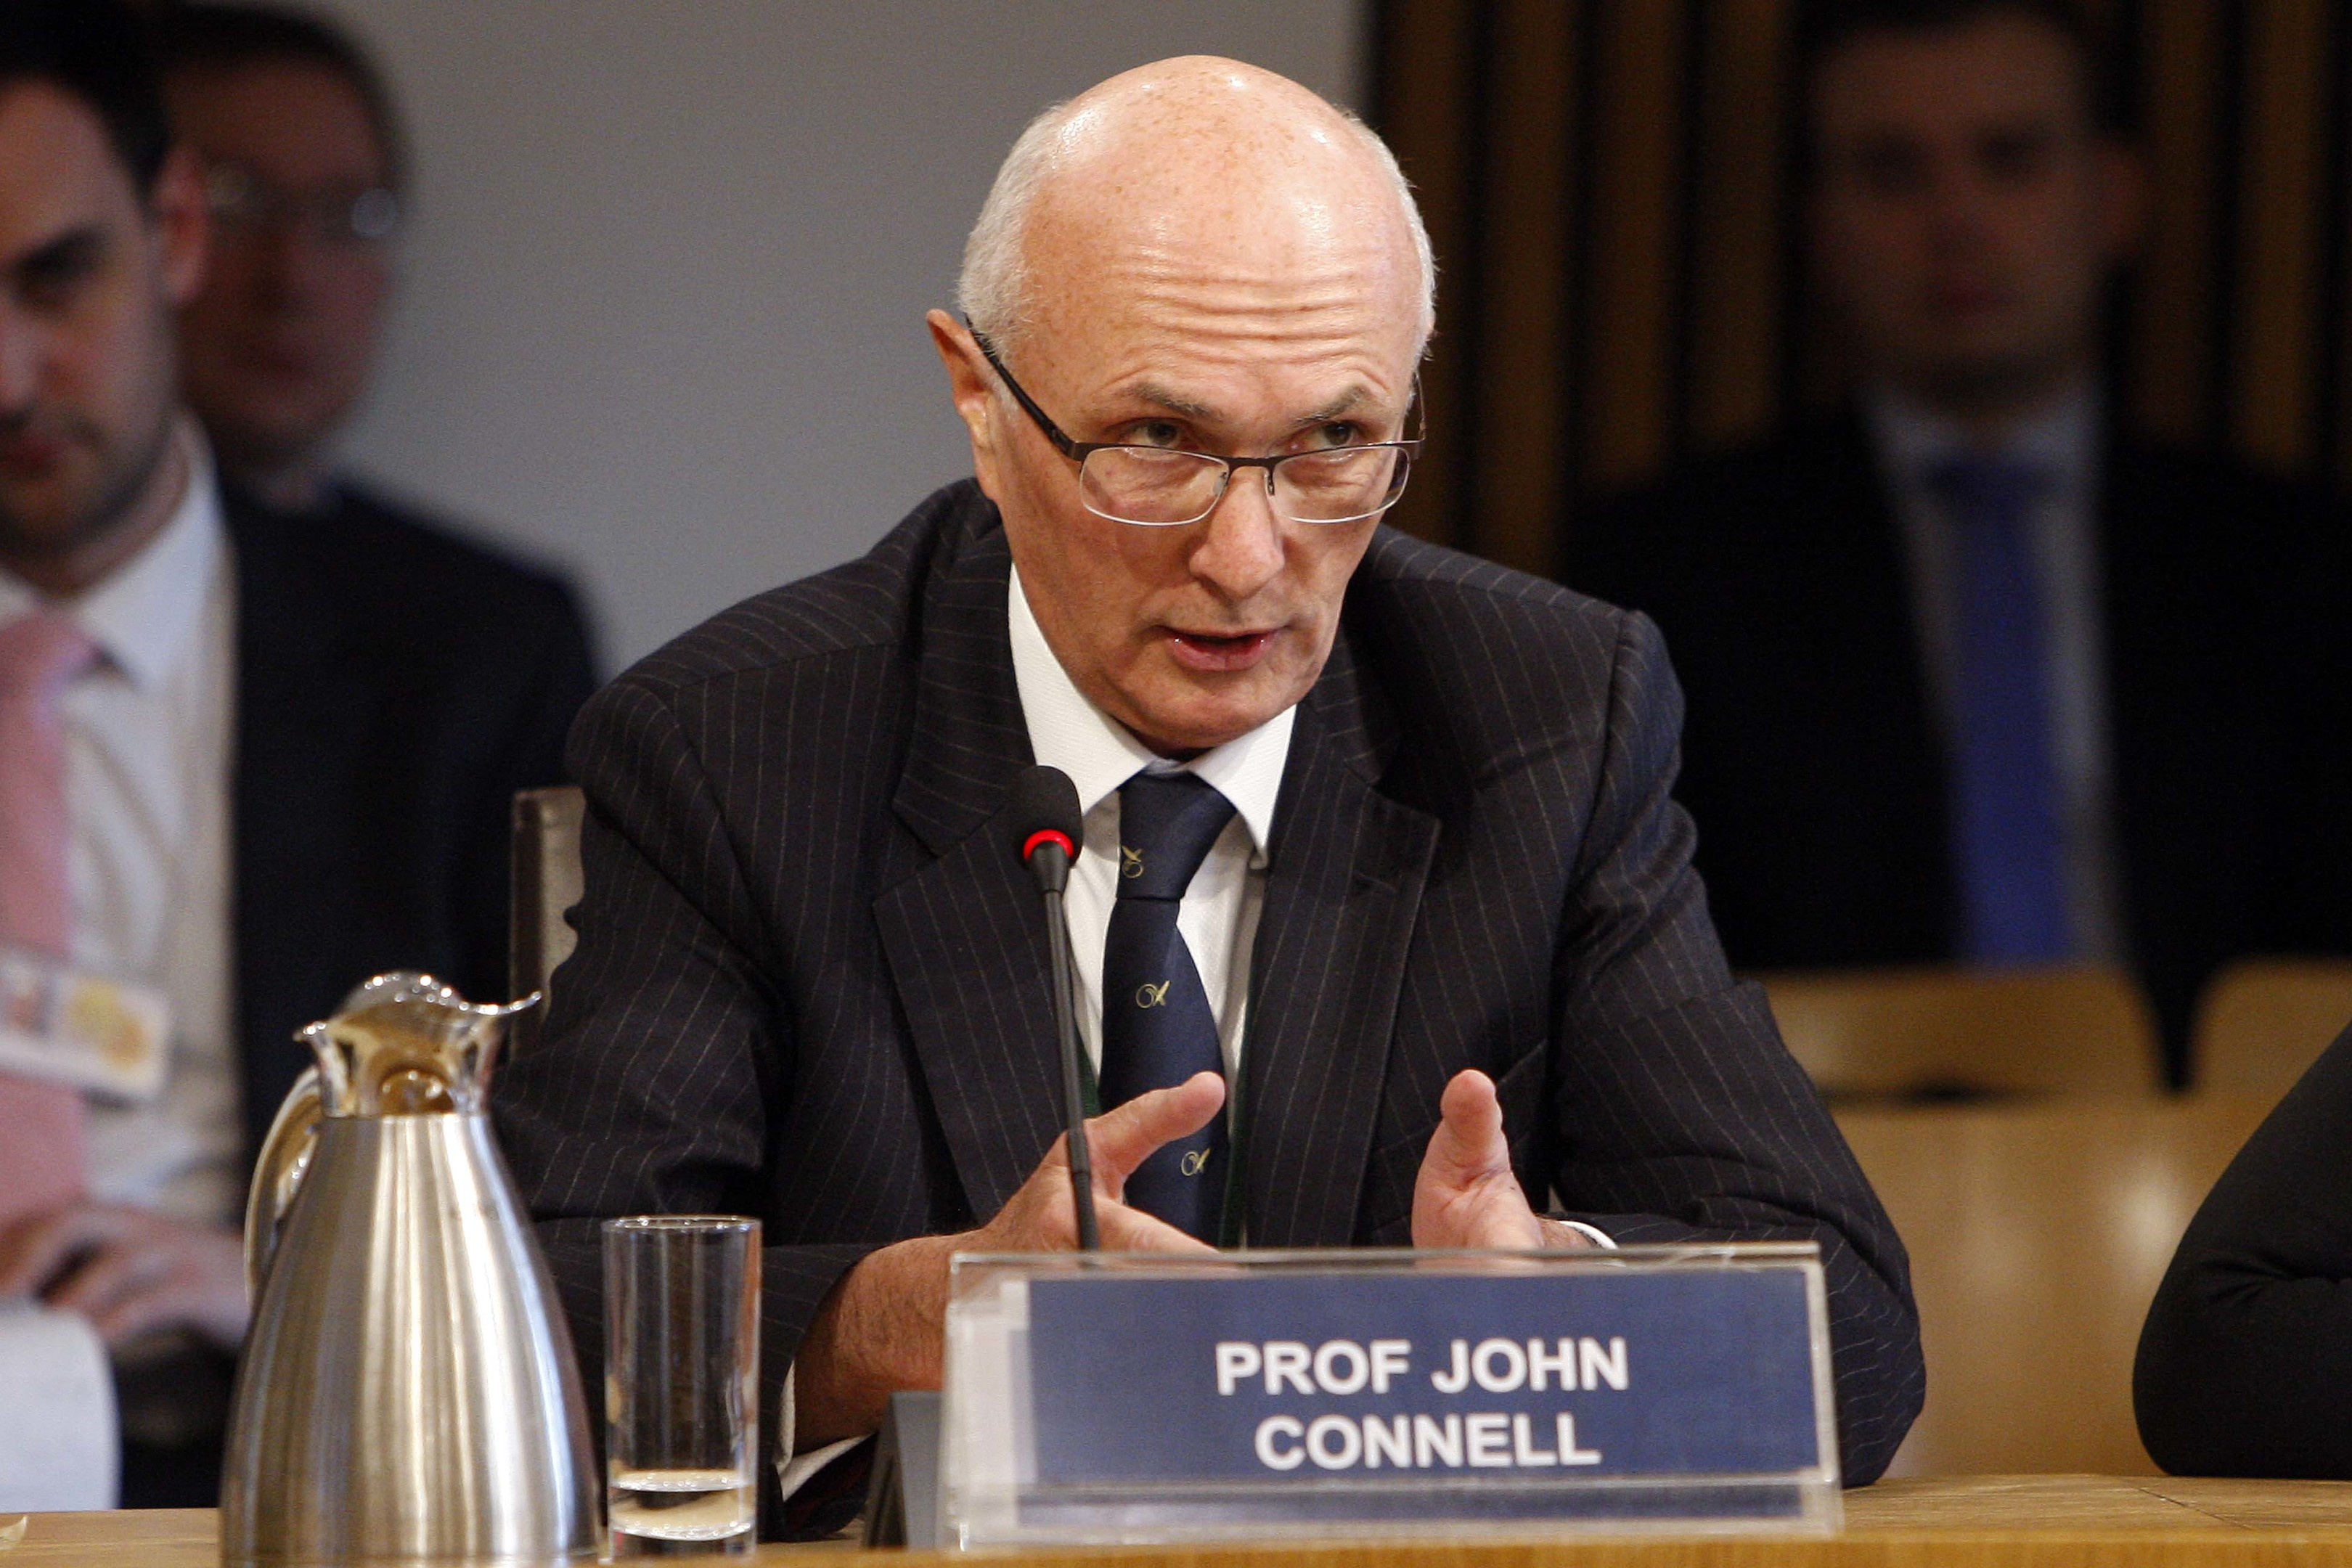 Professor John Connell, who resigned as chairman of NHS Tayside on Friday.